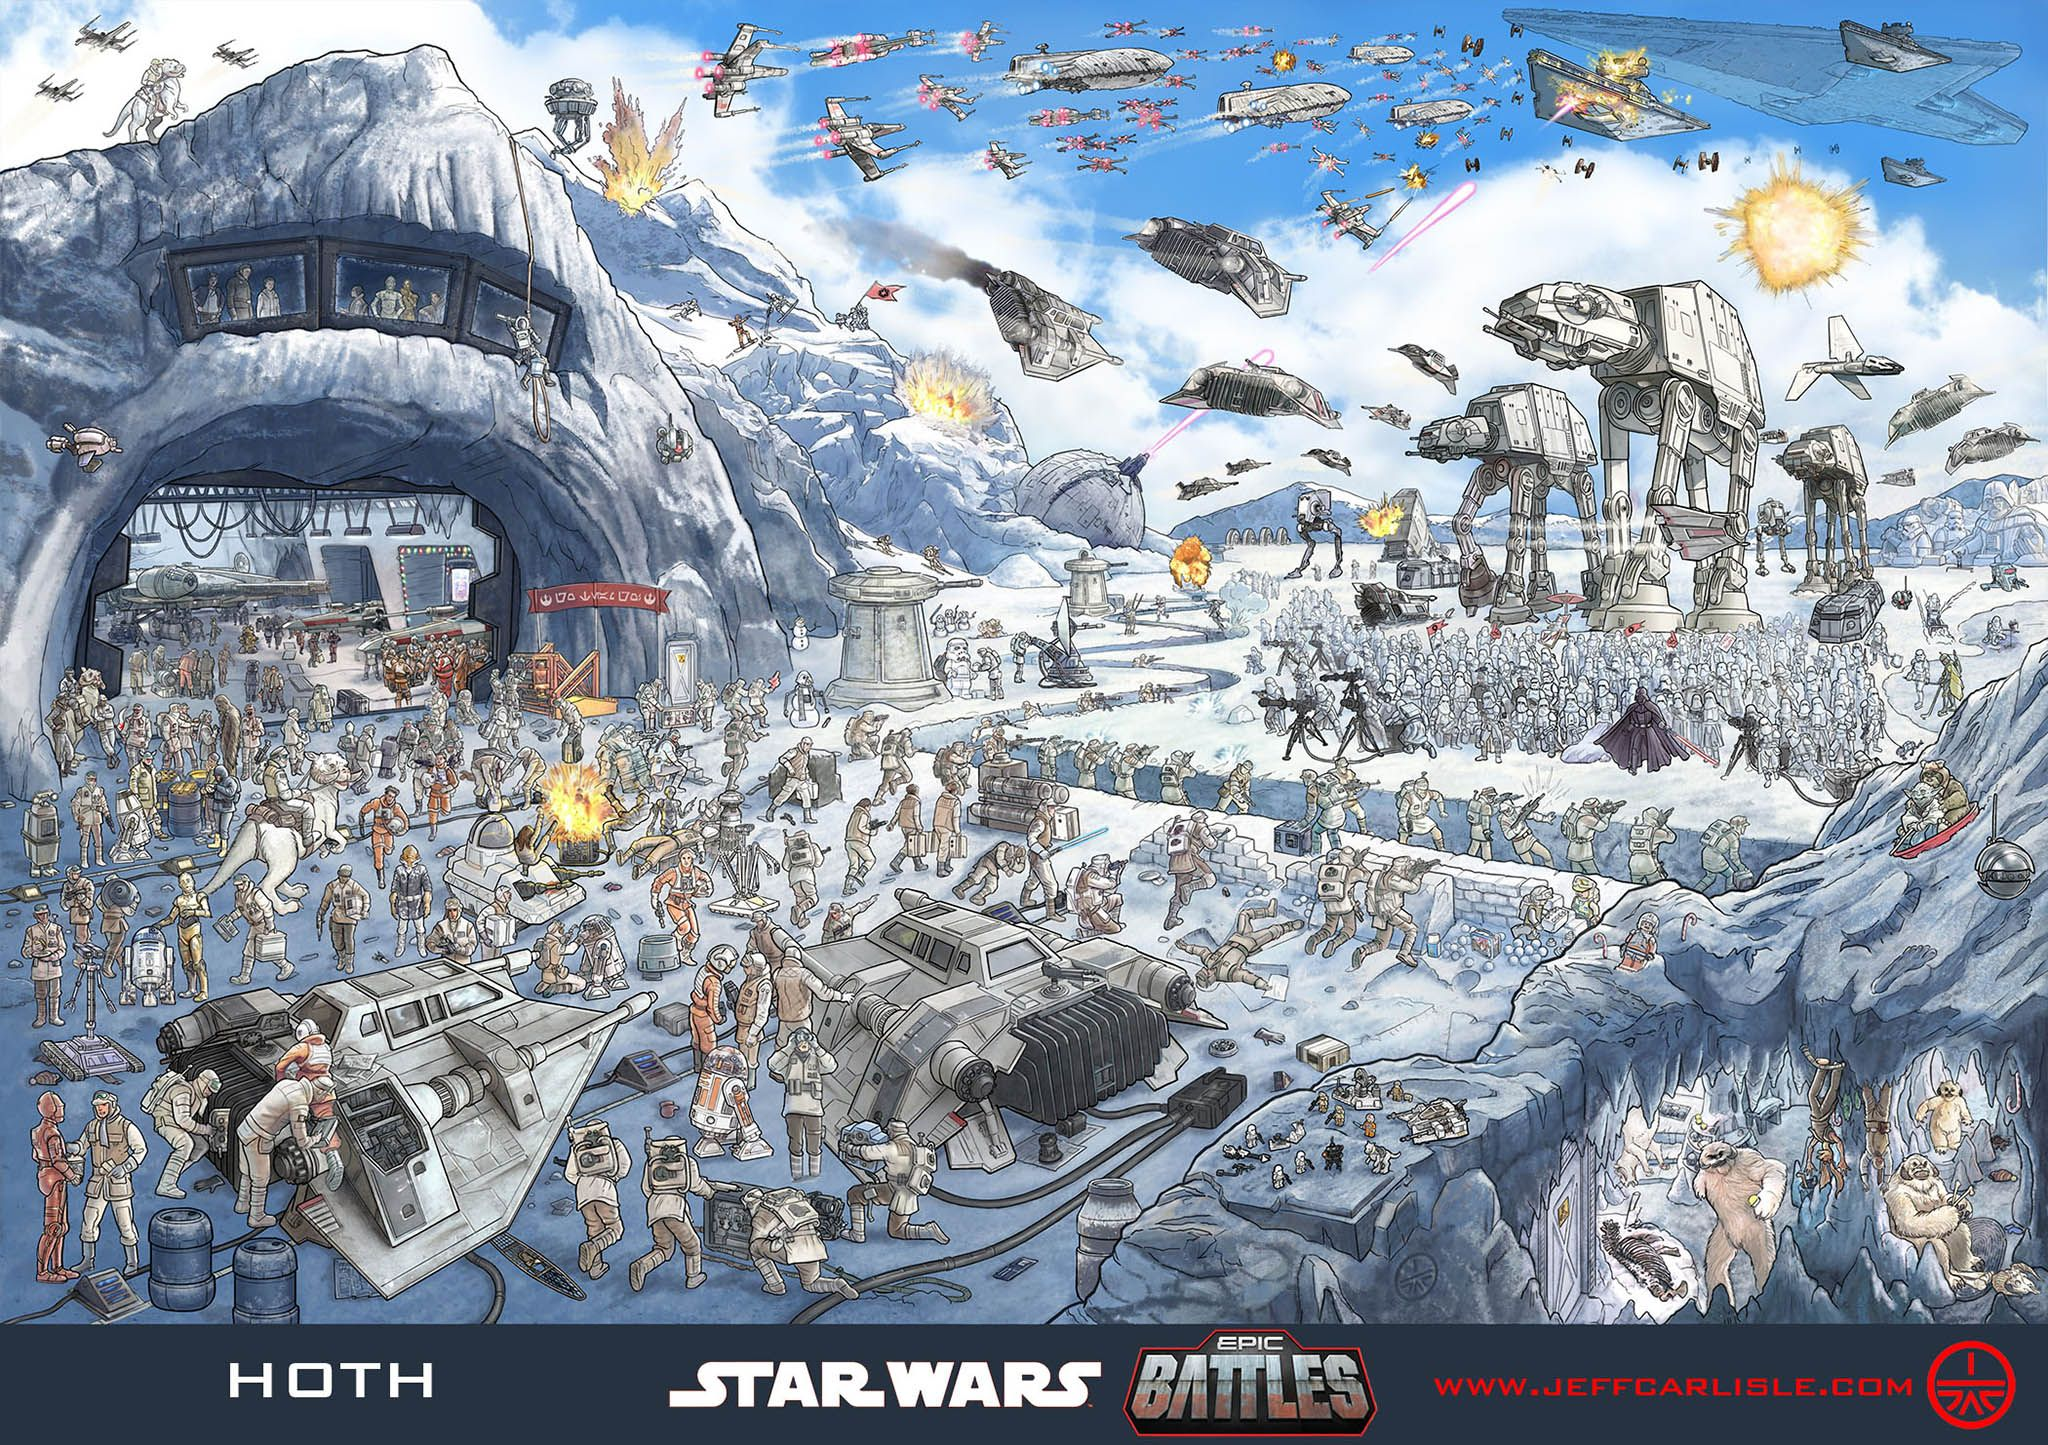 Toys r us star wars epic battles hoth star wars art pinterest toys r us star wars epic battles hoth gumiabroncs Image collections